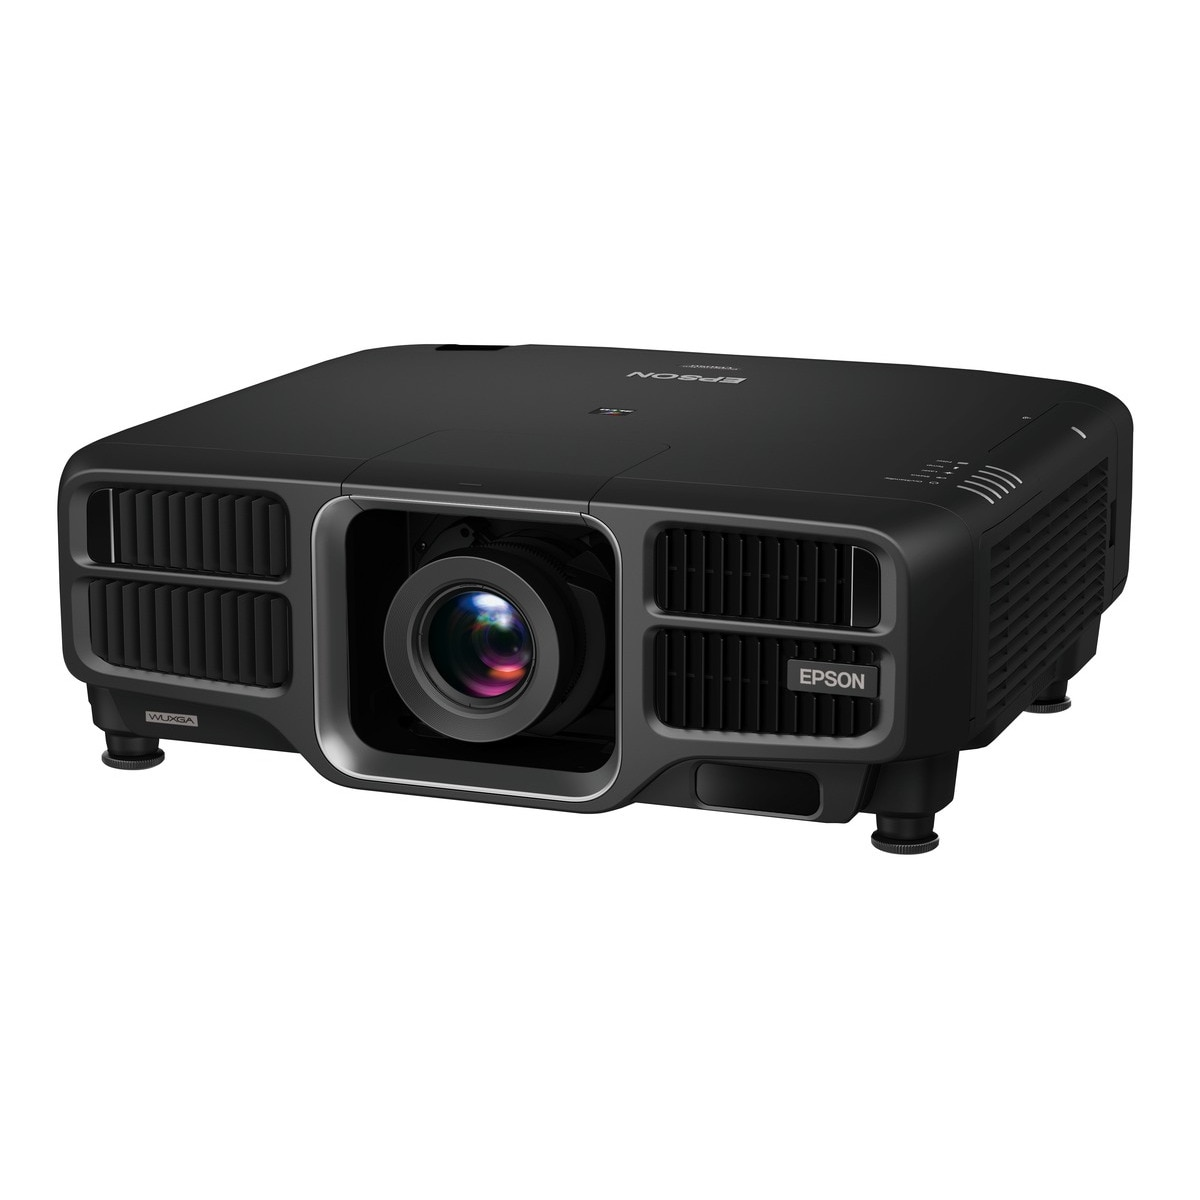 Cinema Projectors from Epson.  Epson G Series Projectors with 4k !!!  Daylight Projectors from Epson.  High brightness projectors with high 7000 lumens and above brightness.  Ideal for large screen cinema projection and daylight projection and large venue projection,  Contact us at Viewtech Hyderabad for more details.  We at Viewtech are the authorized Epson Projector dealers.